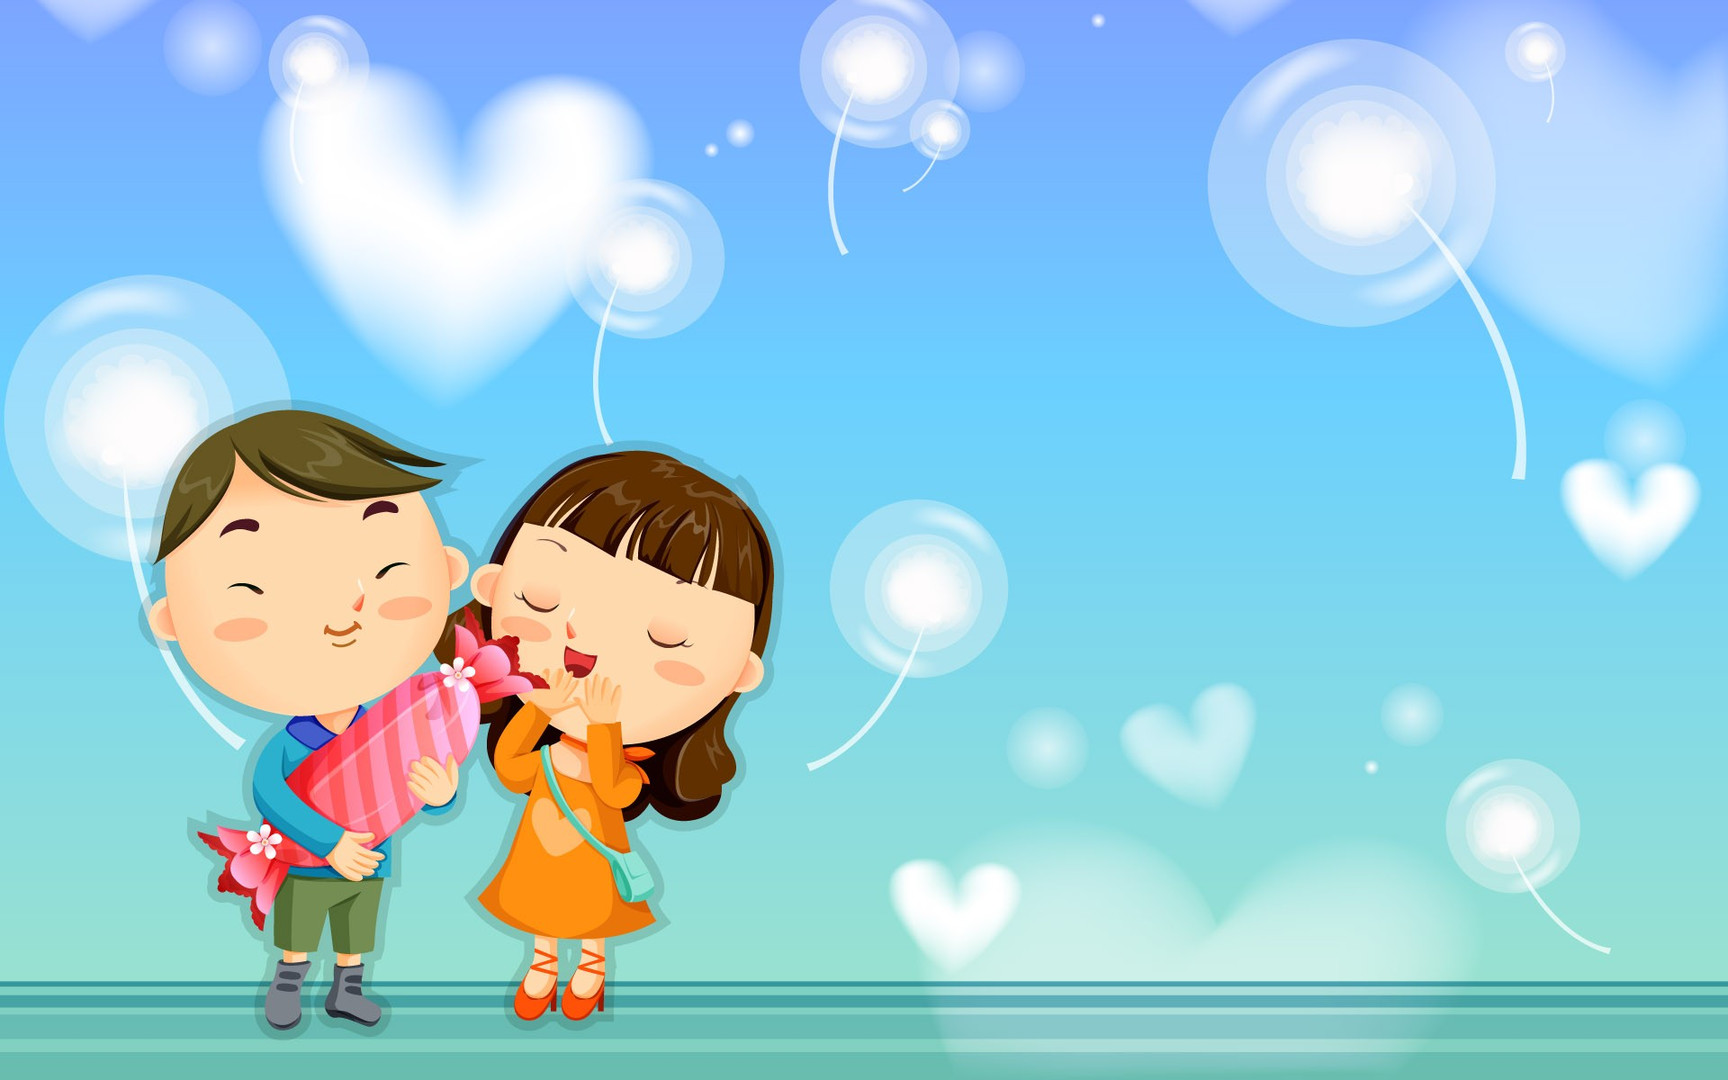 cartoon Love Wallpapers - Wallpaper, High Definition, High Quality, Widescreen